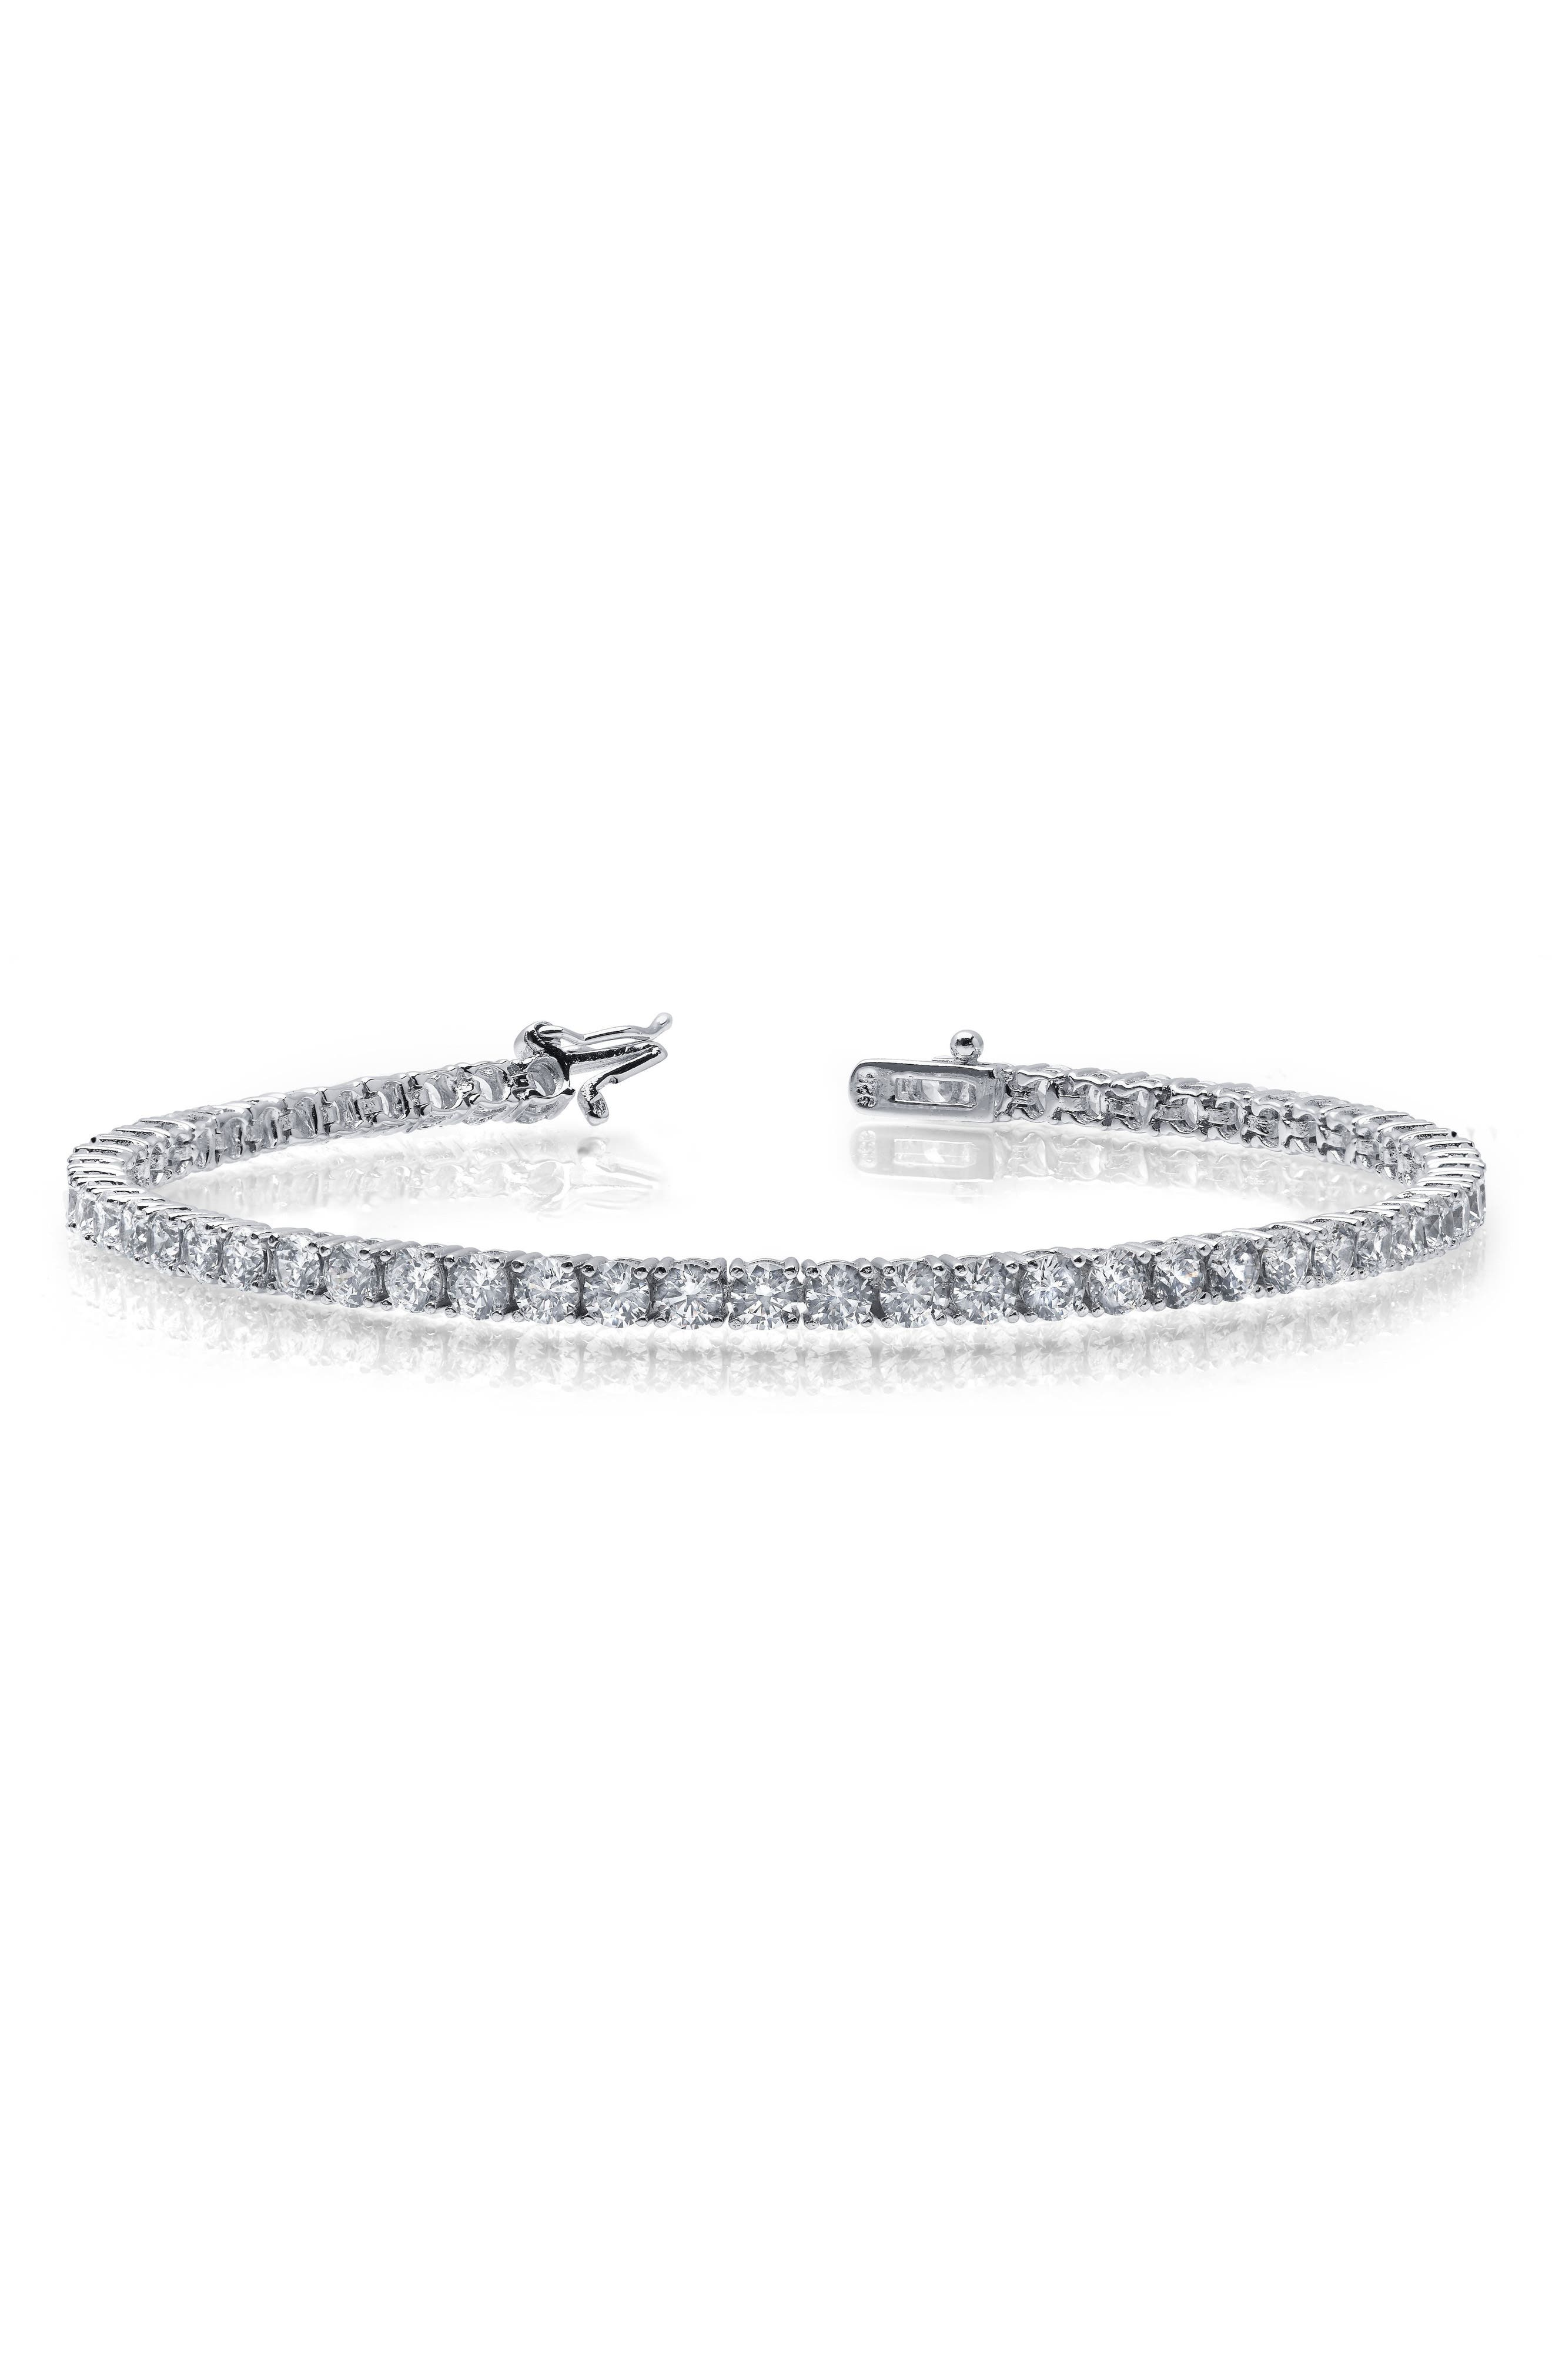 Simulated Diamond Bracelet,                         Main,                         color, SILVER/ CLEAR